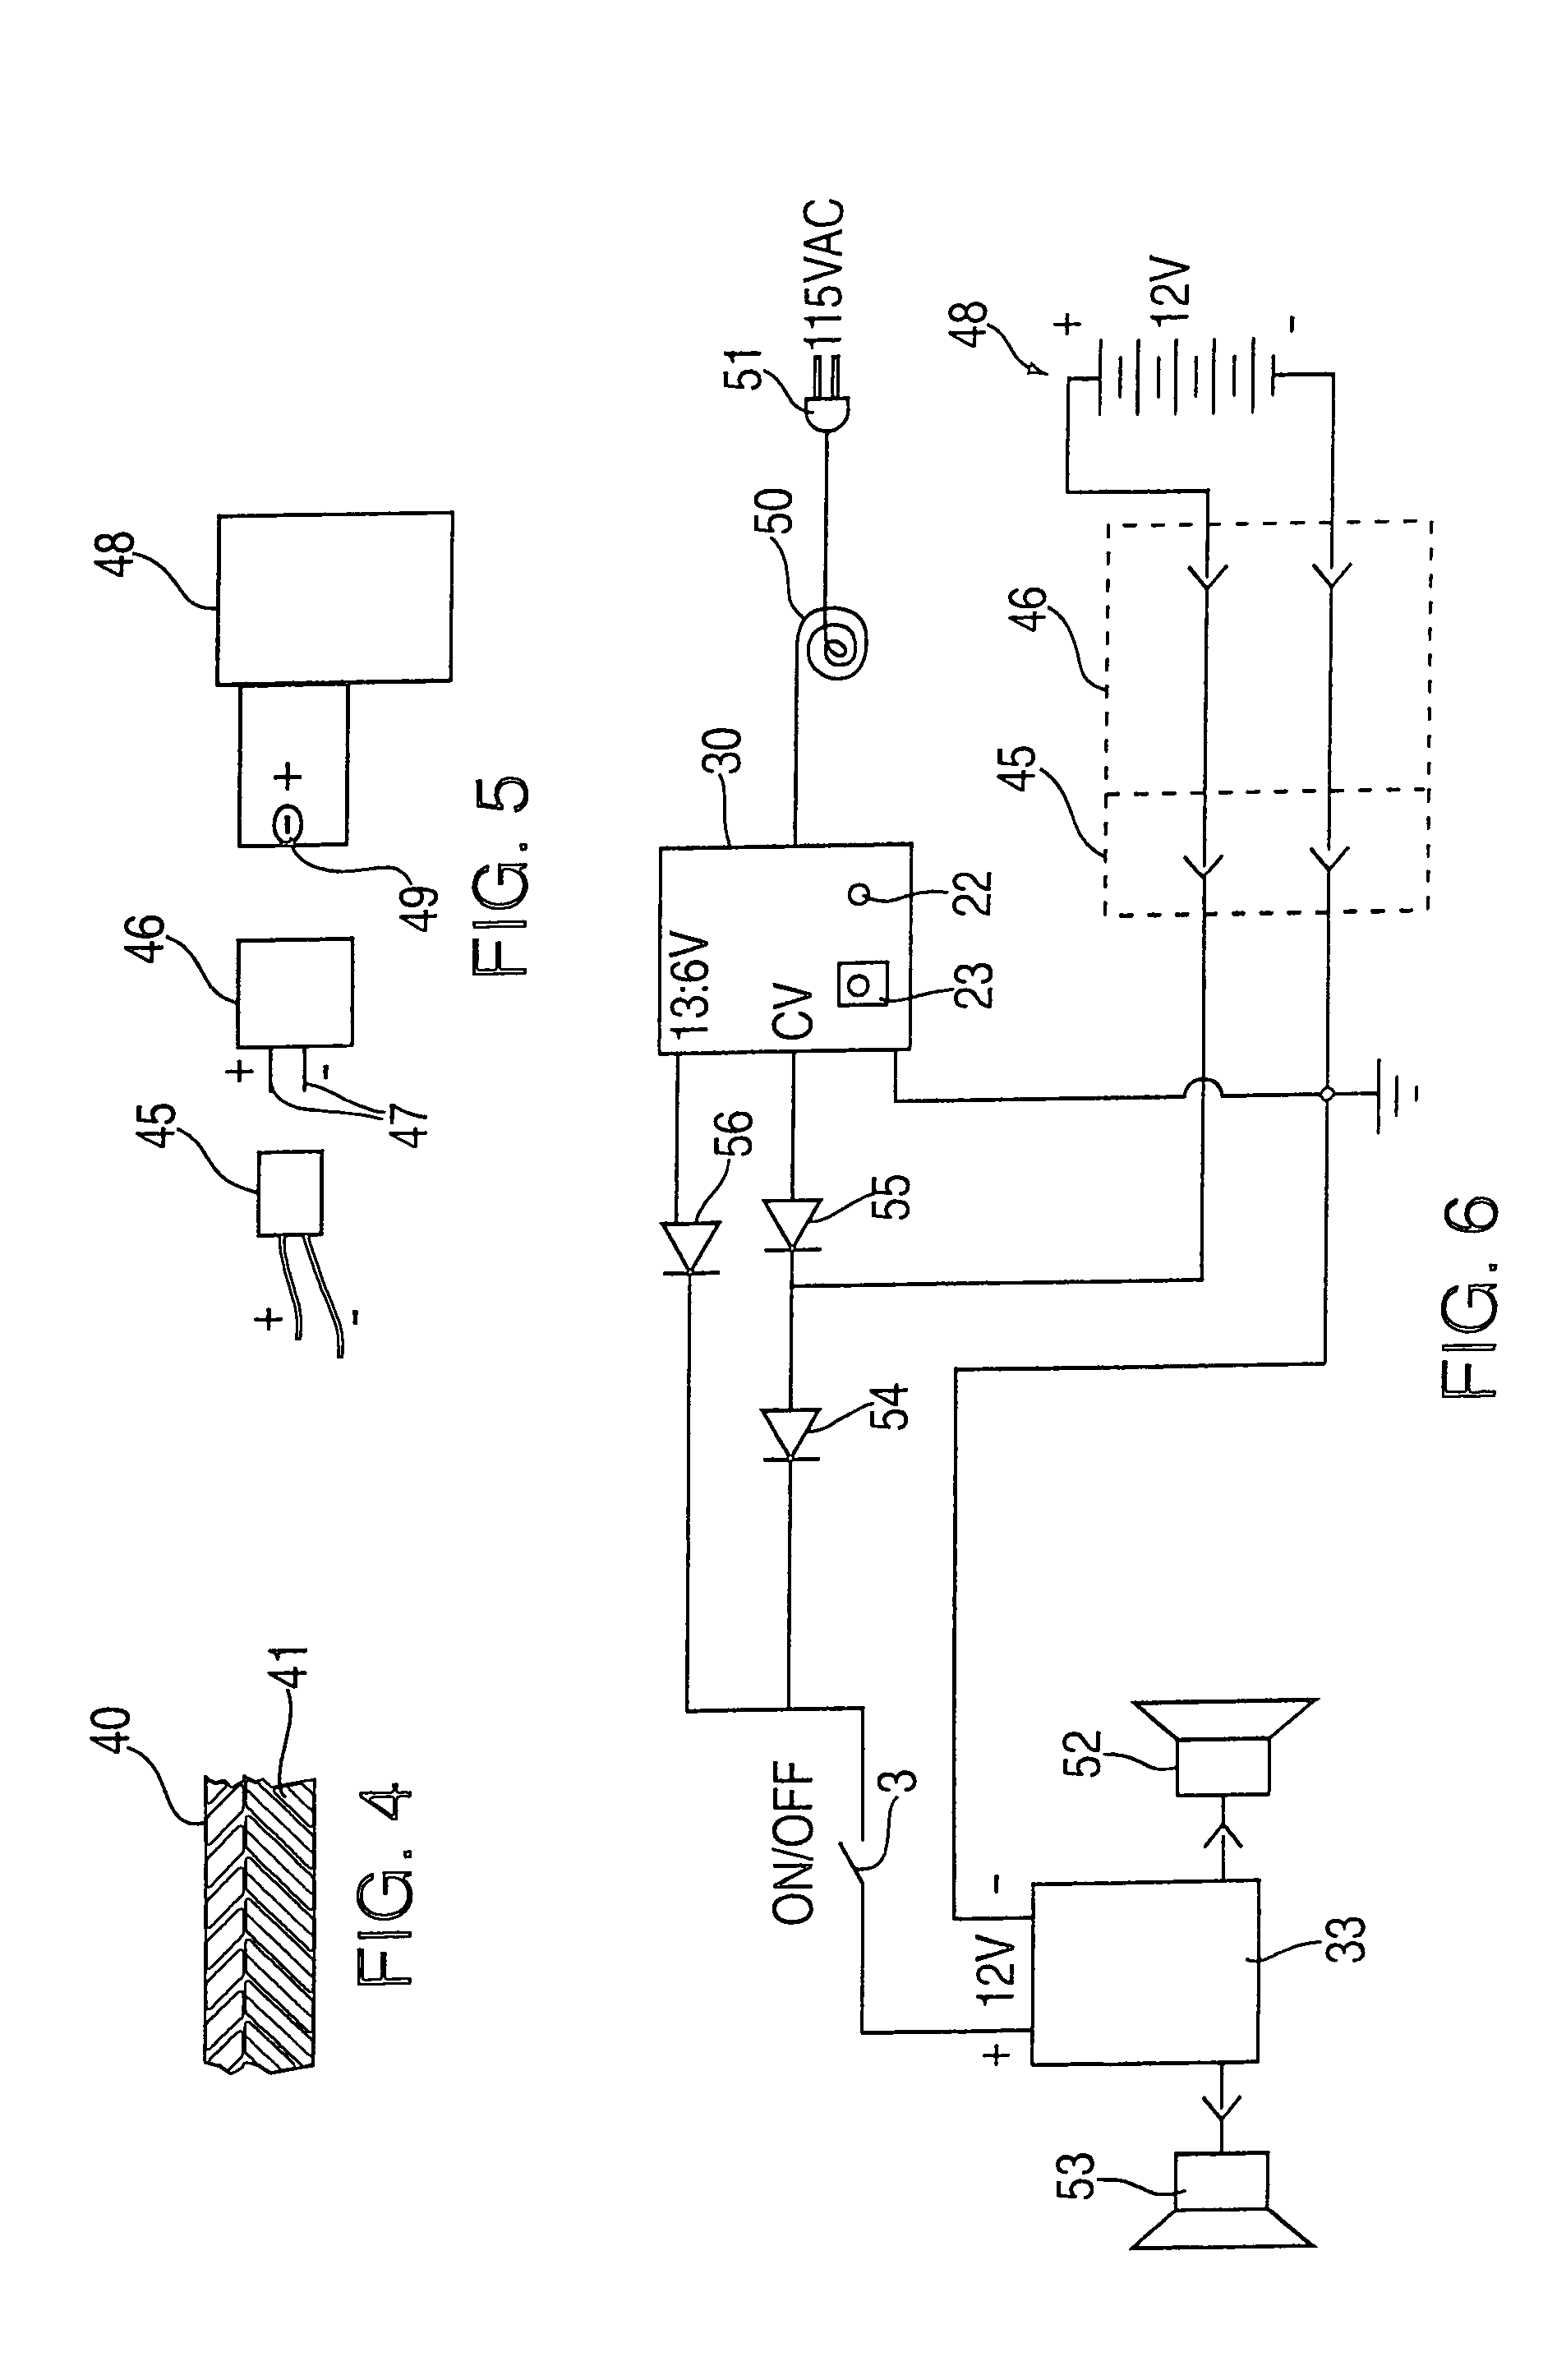 patent us7043283 - ruggedized tradesworkers radio